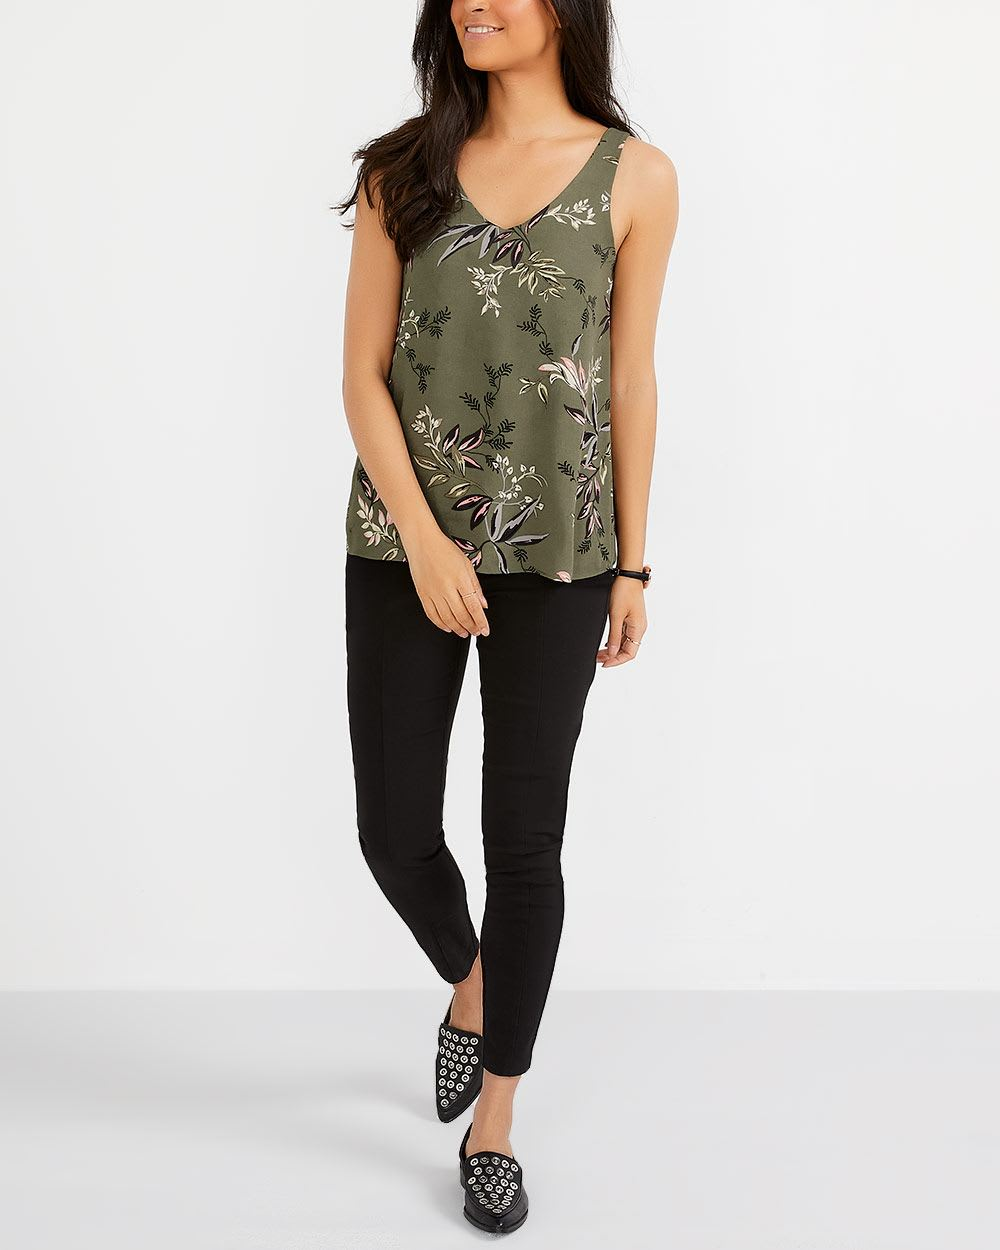 R Essentials Printed Reversible Cami